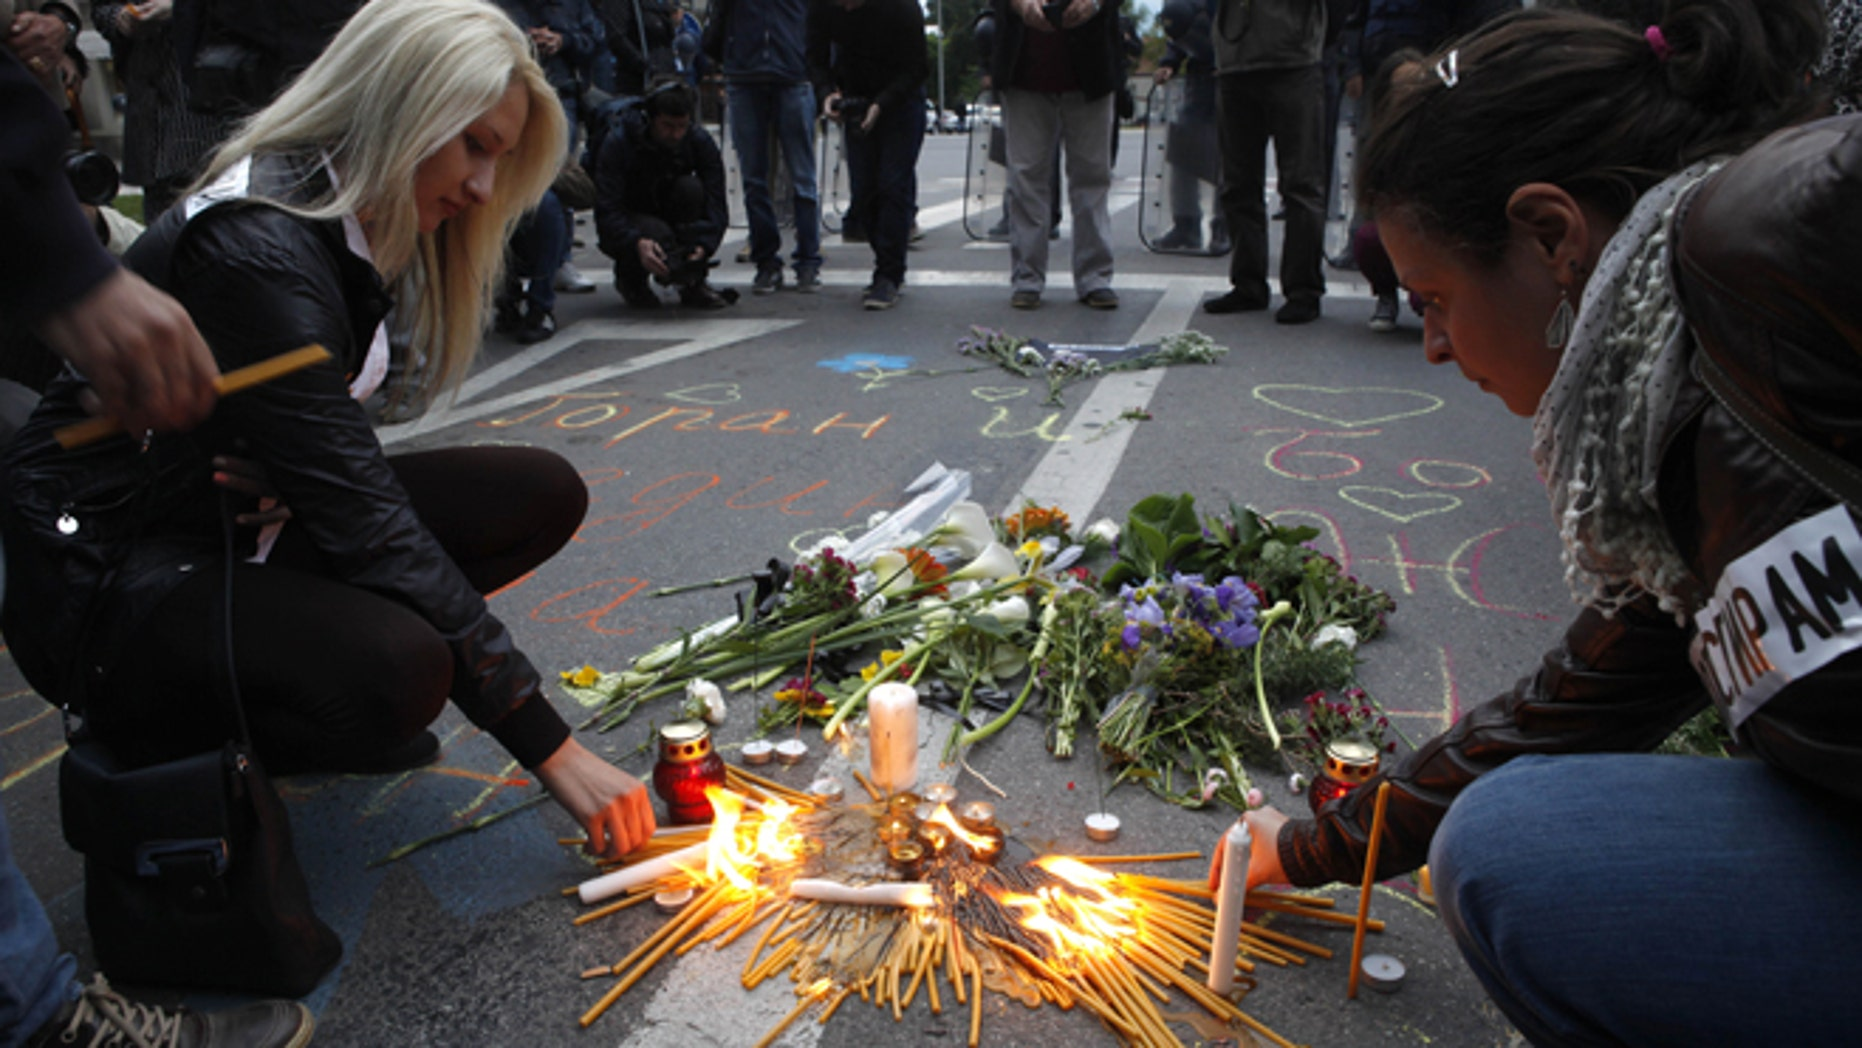 May 11, 2015: People light candles and lay flowers as police officers stand guard in front of the government building in Skopje, Macedonia. A group of people gathered peacefully in Skopje for the eight police officers who were killed and 37 more were wounded in an exchange of fire between special police forces and an armed group that started in Macedonian northern town of Kumanovo on Saturday. Fighting between police forces and members of an armed group in Kumanovo ended Sunday after two days leaving 8 police officers and 14 armed suspected terrorists dead. AP Photo/Boris Grdanoski